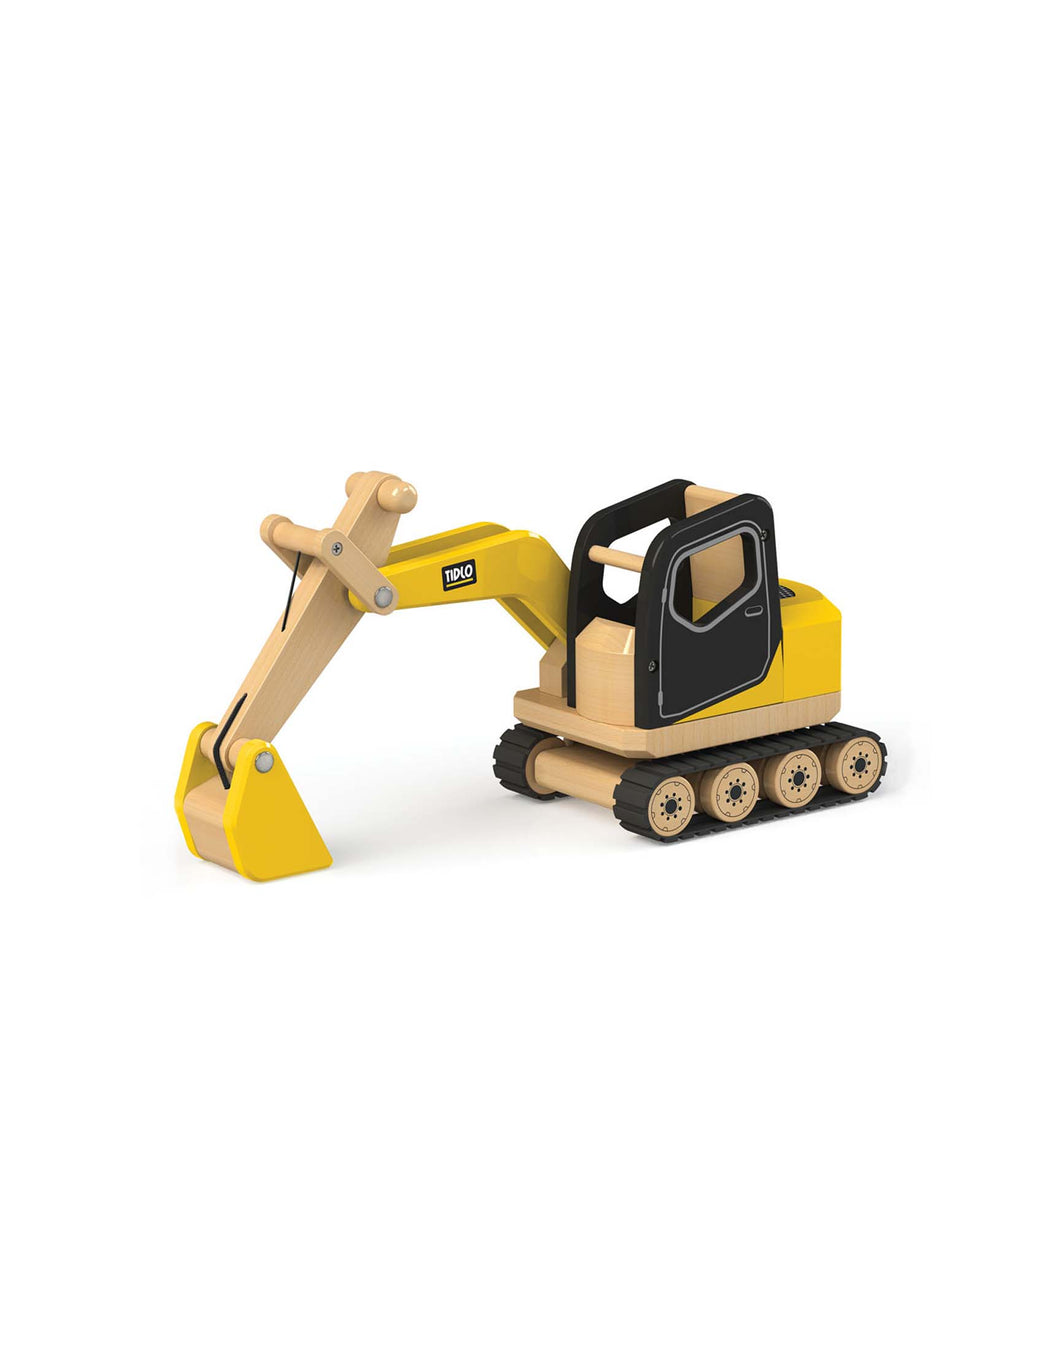 Wooden Digger Toy